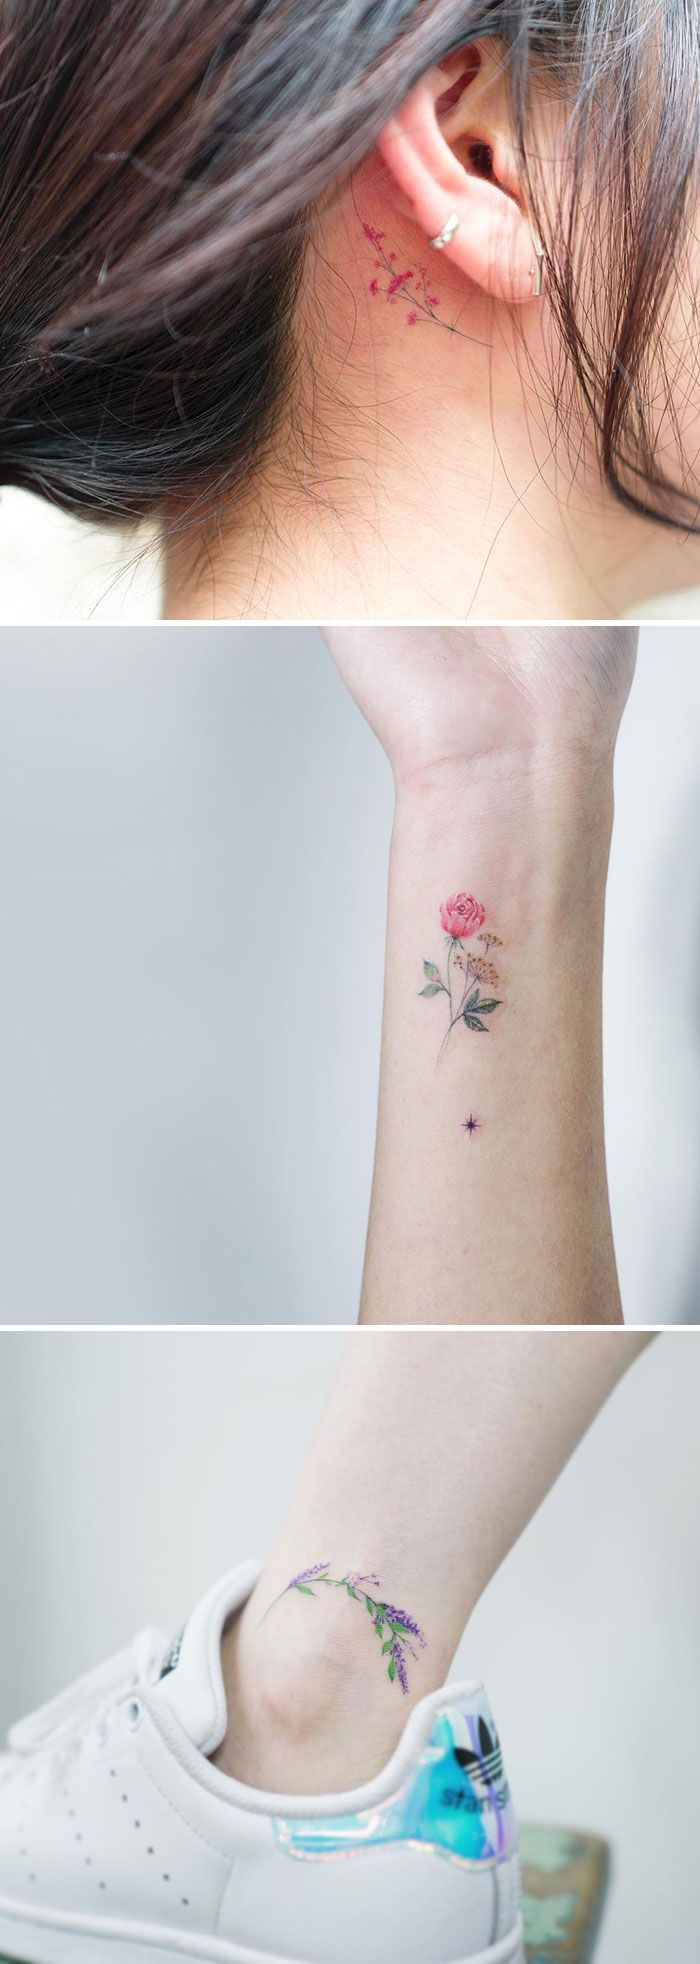 20 Most Beautiful Floral Tattoos For Your Inspiration Tattoos